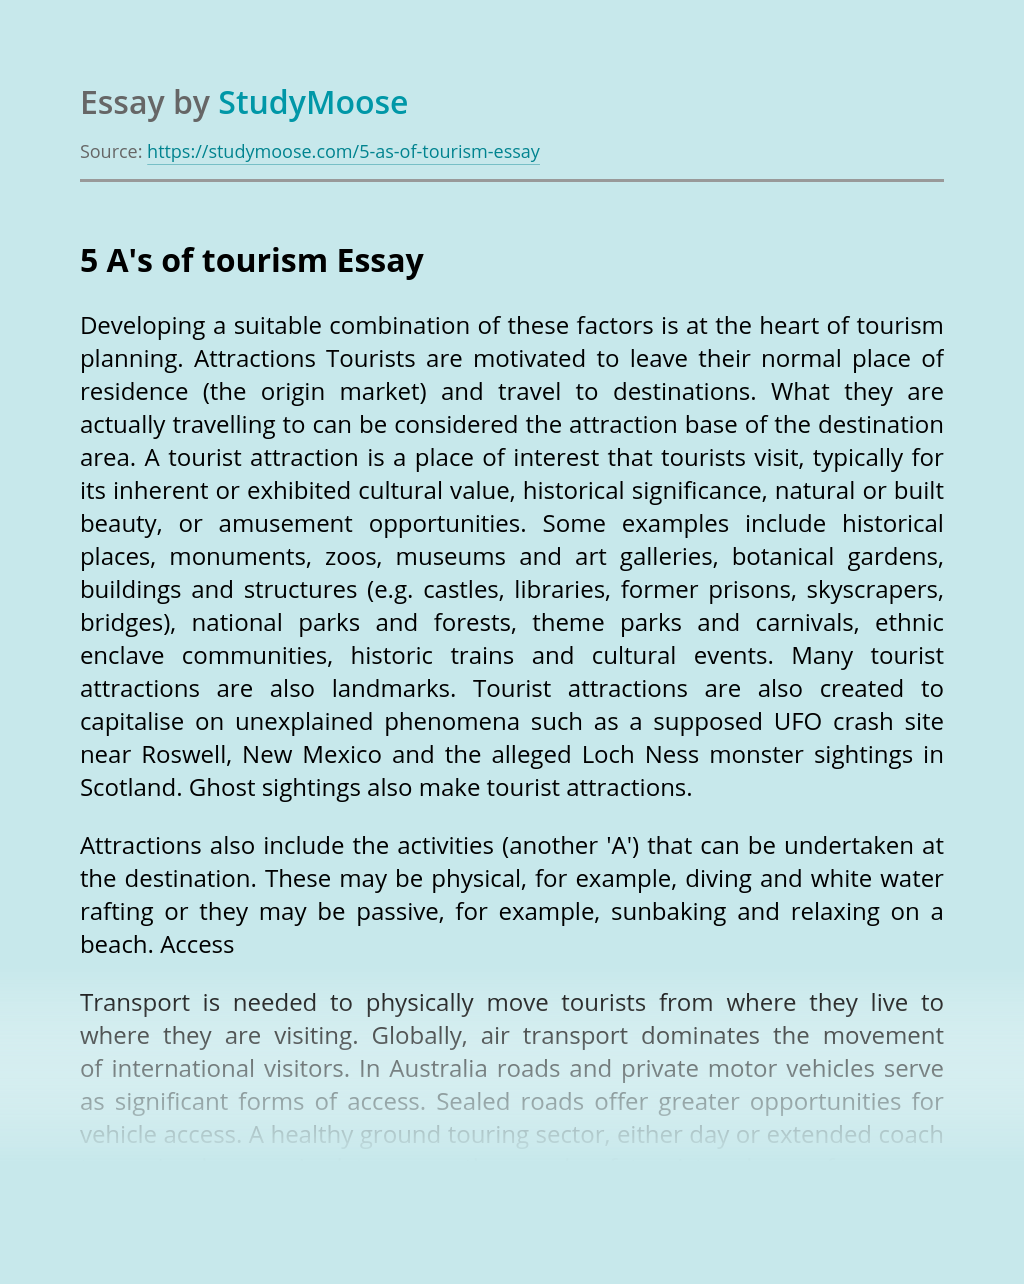 5 A's of tourism